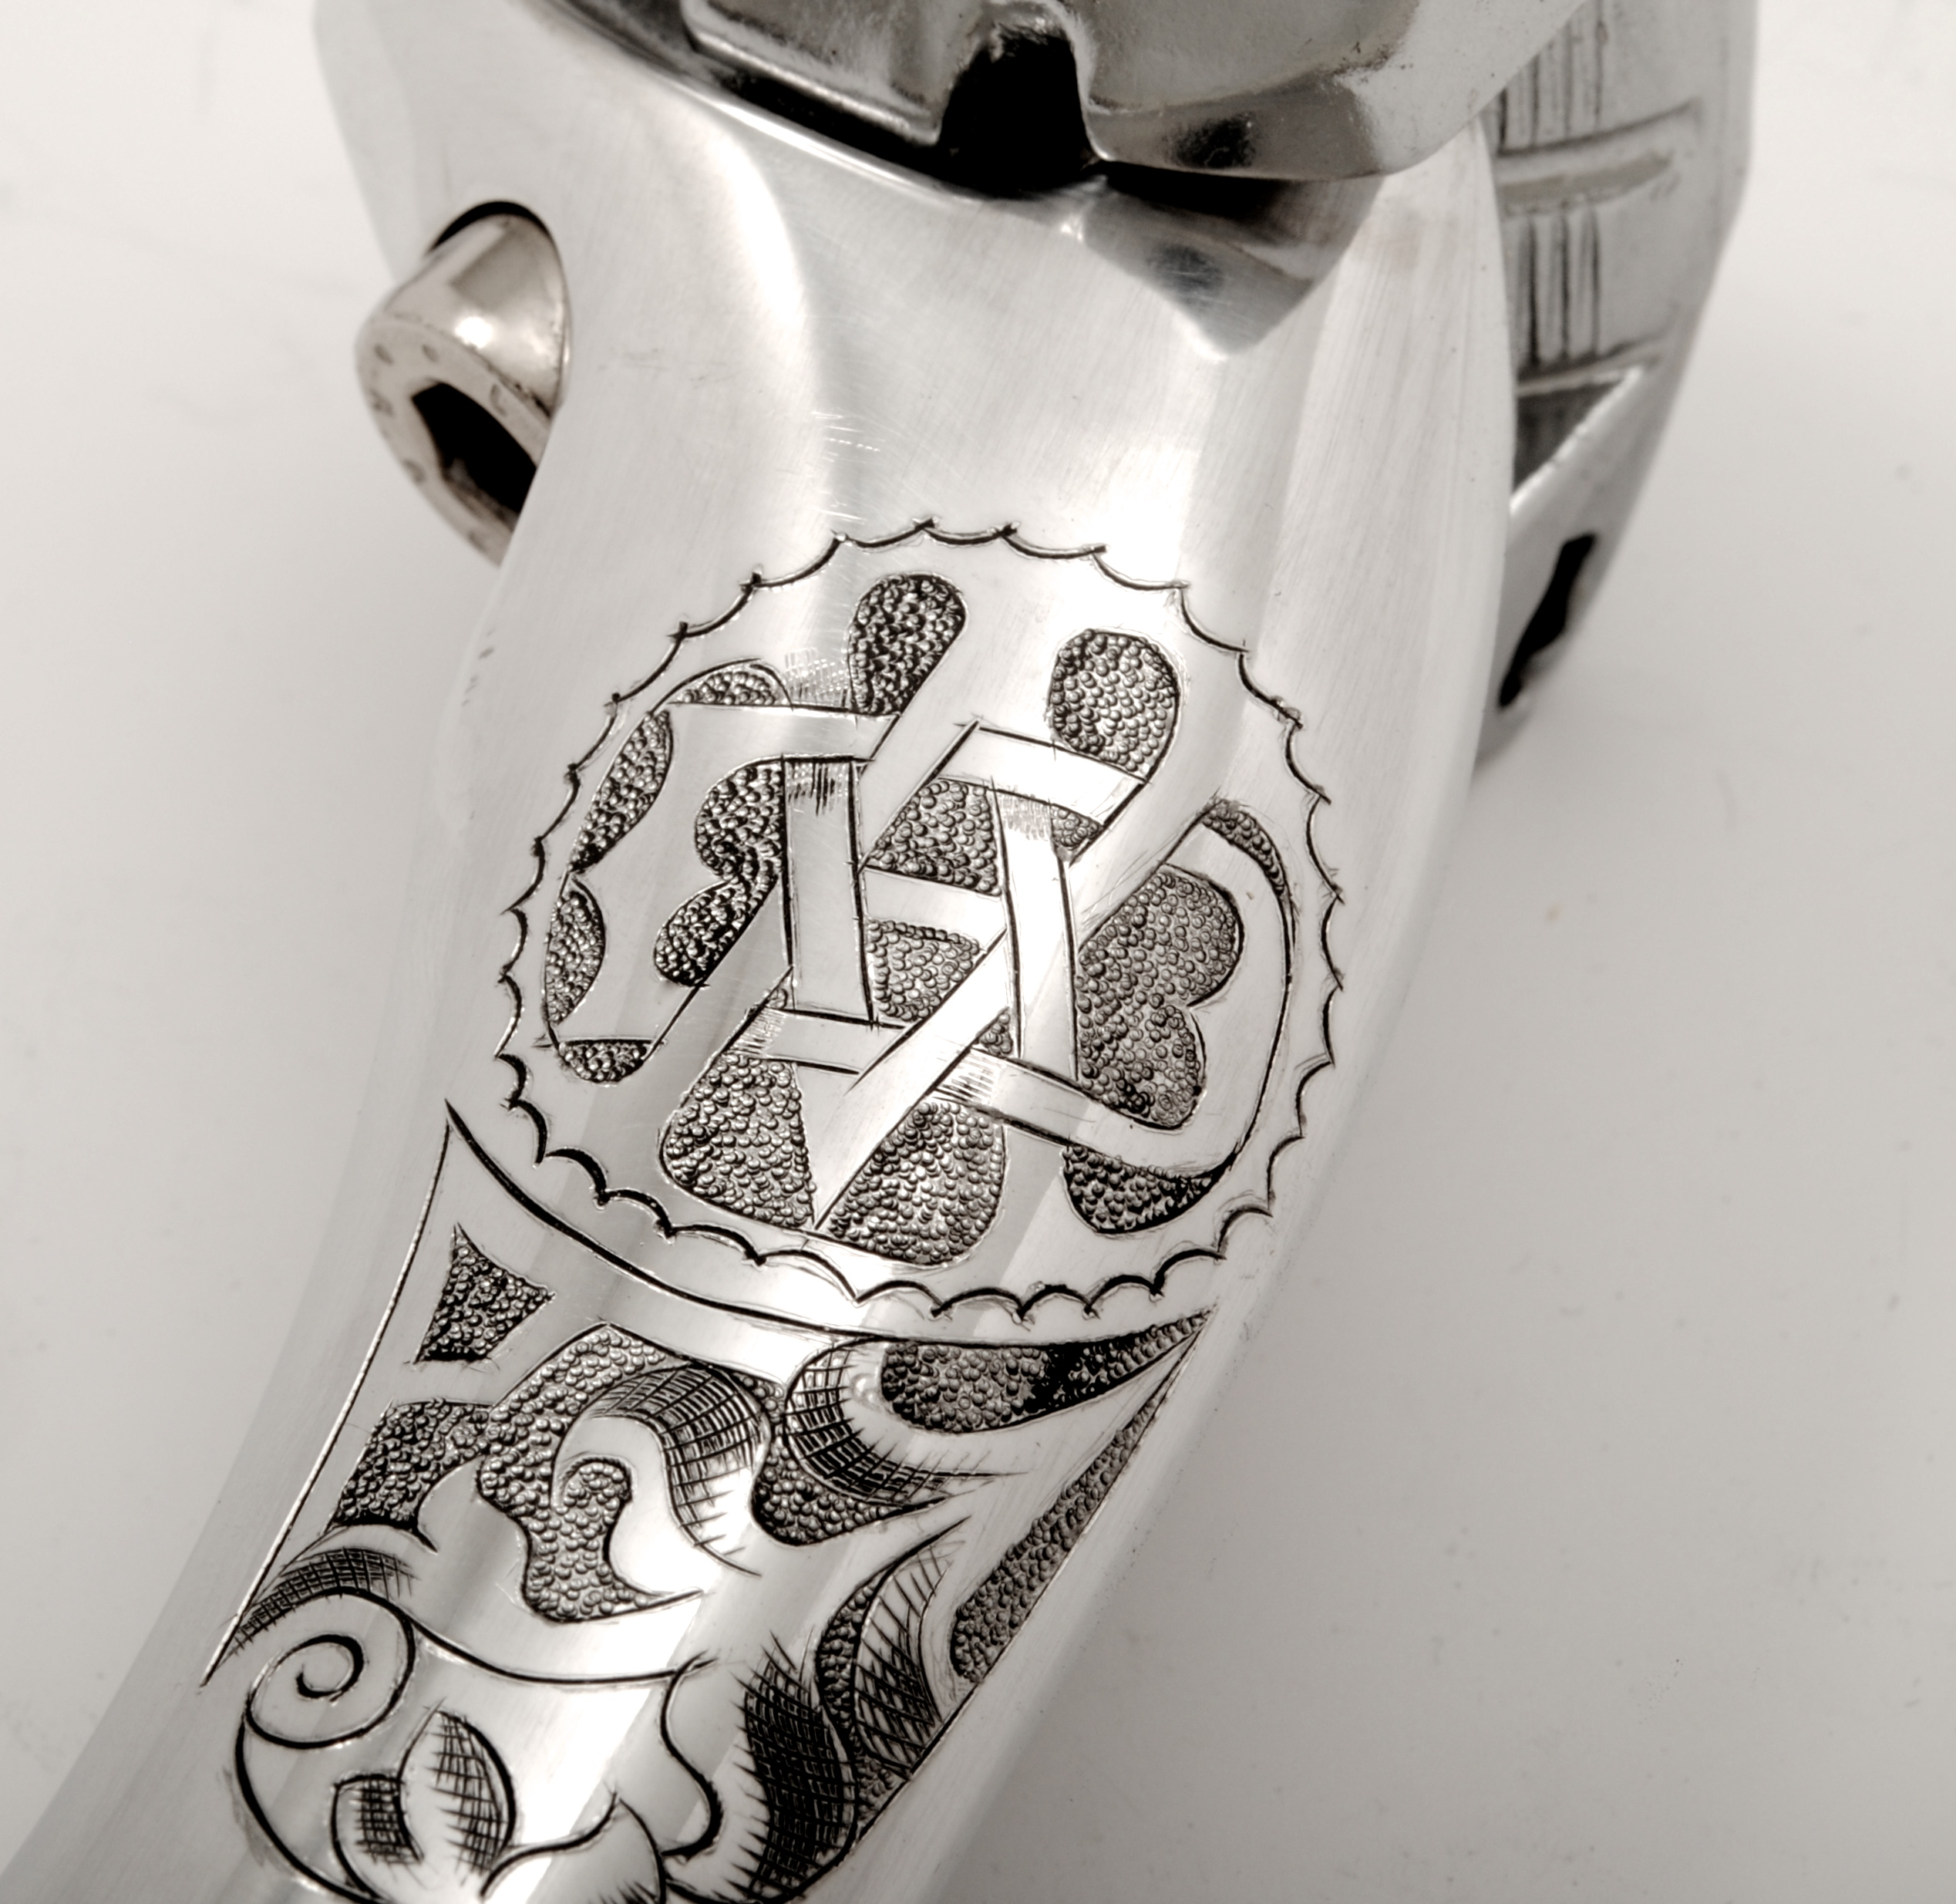 ADV_engraved_groupset_n°2.JPG